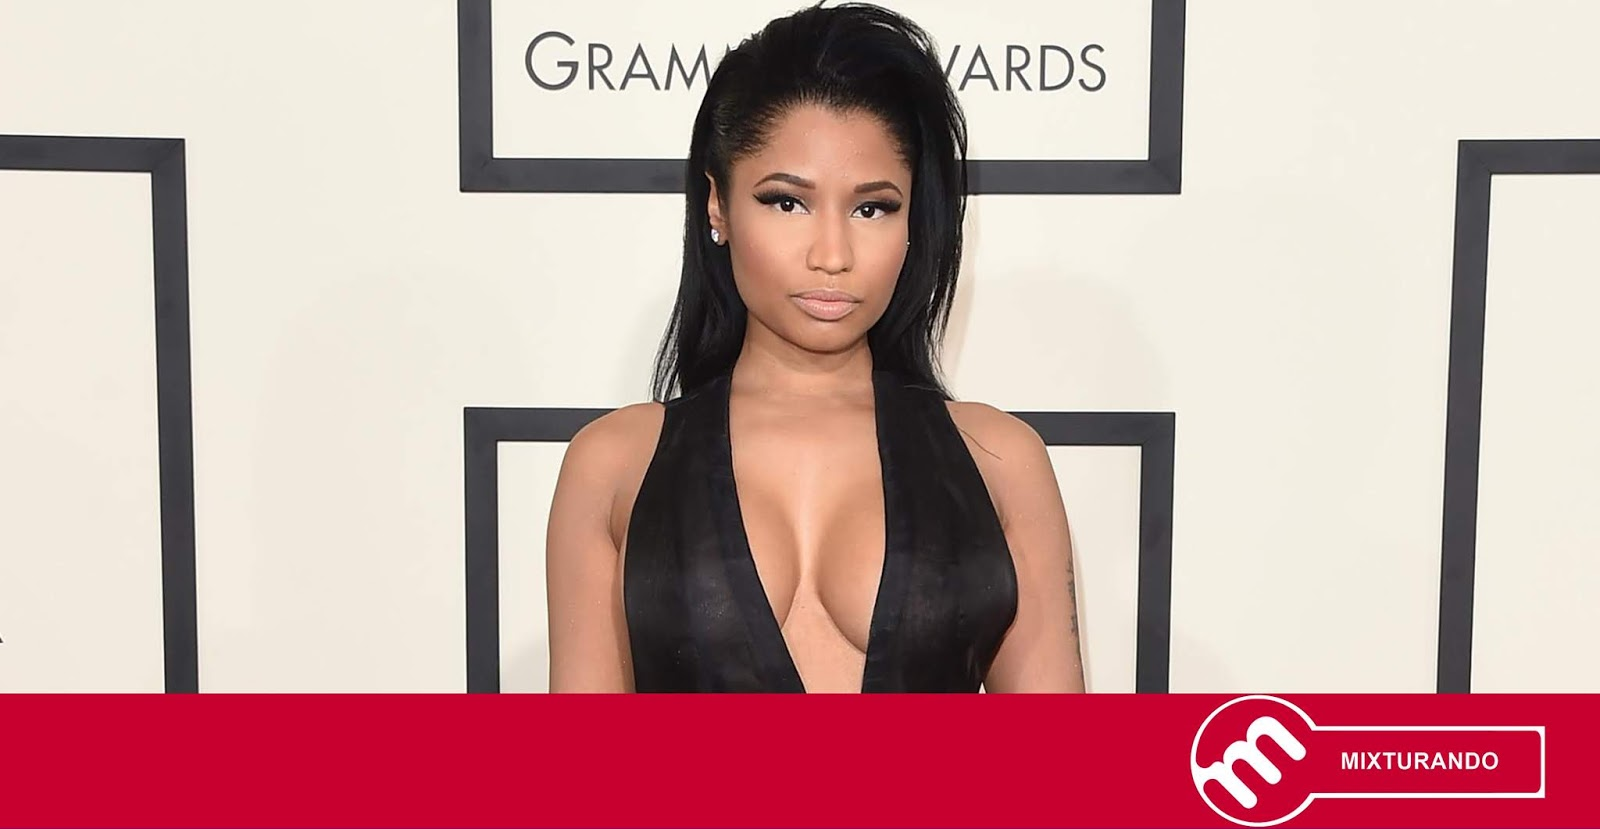 Nicki Minaj critica Grammy Awards; entenda